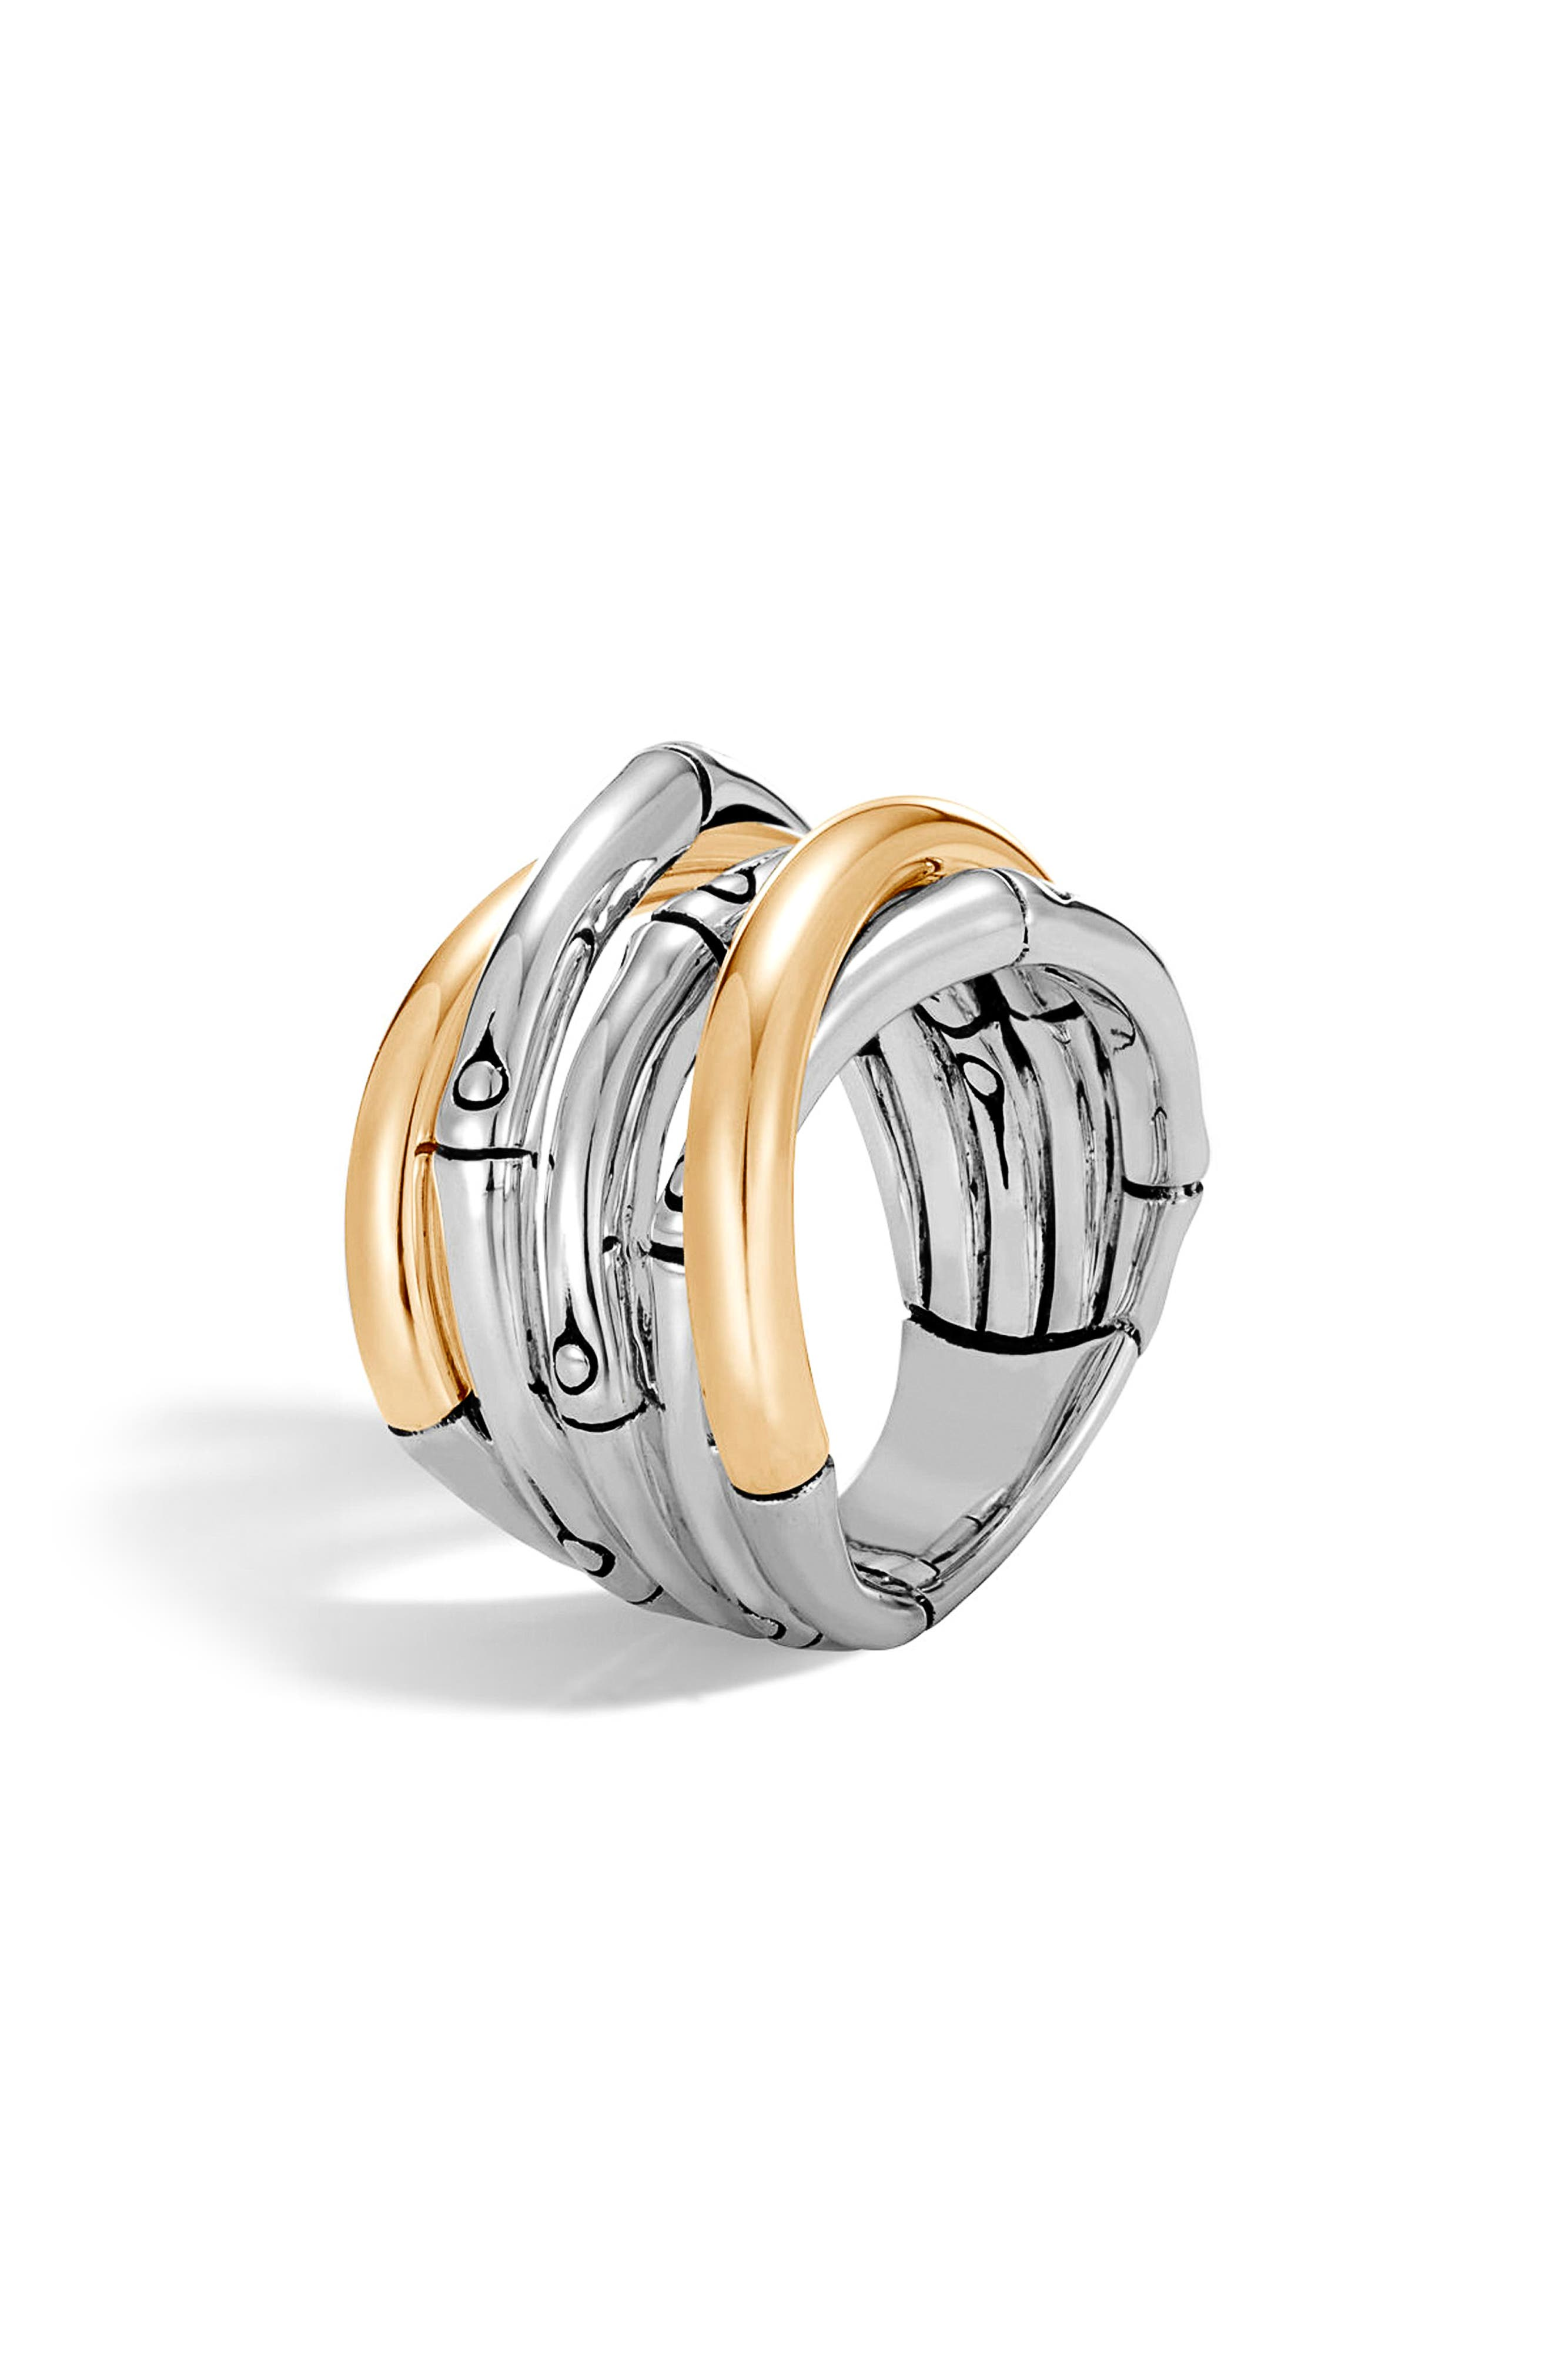 John Hardy Bamboo Gold Sterling Silver Ring